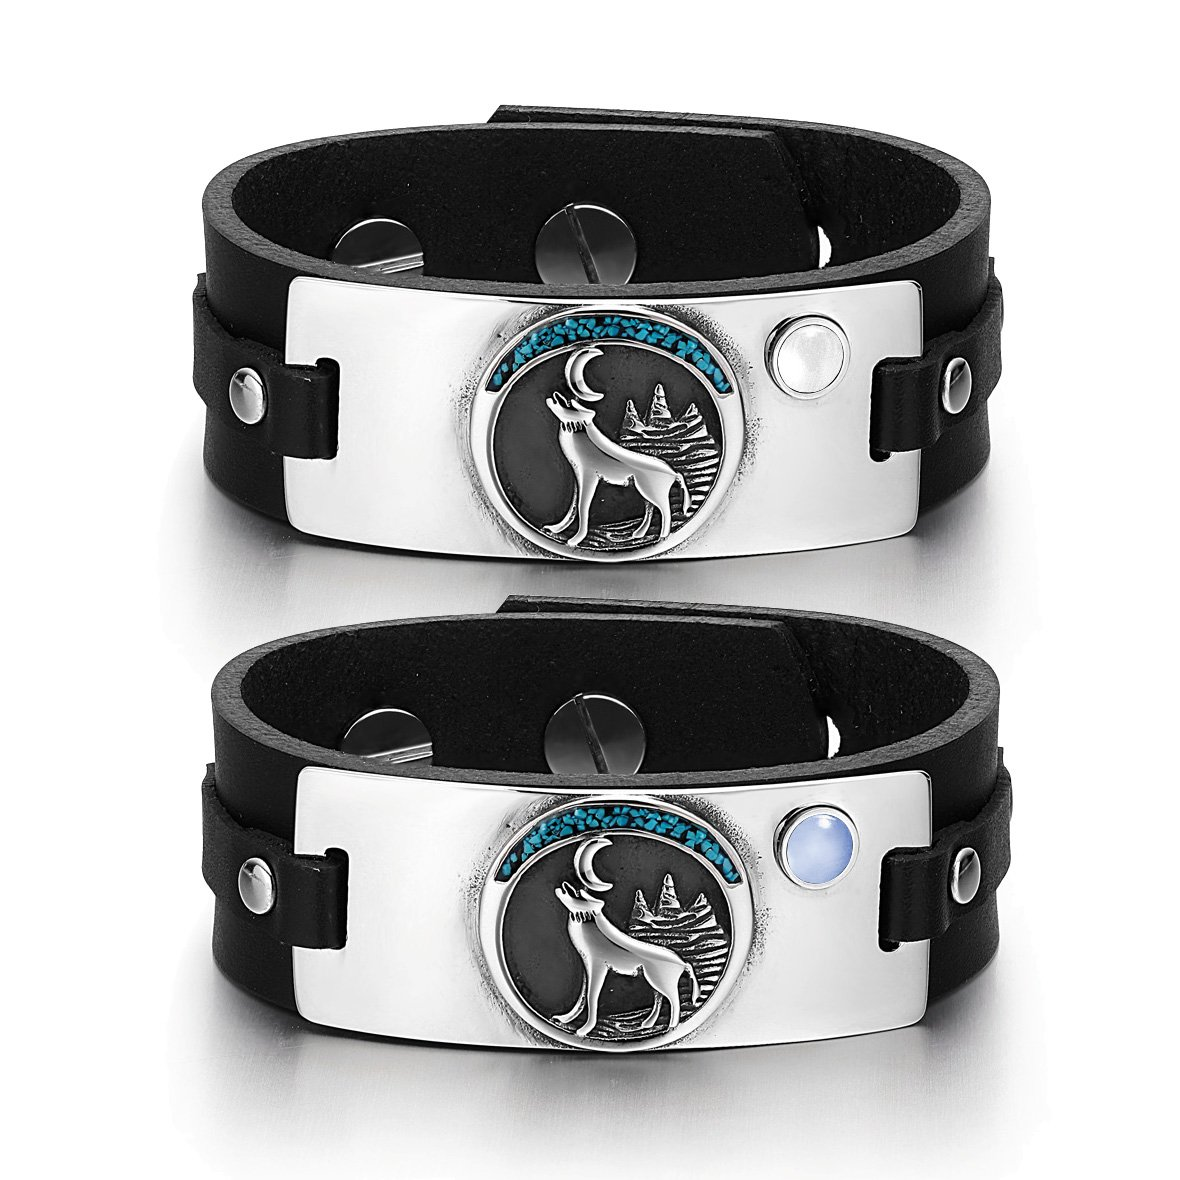 Wild Moon Howling Wolf Amulets Love Couples White Blue Simulated Cats Eye Black Leather Bracelets